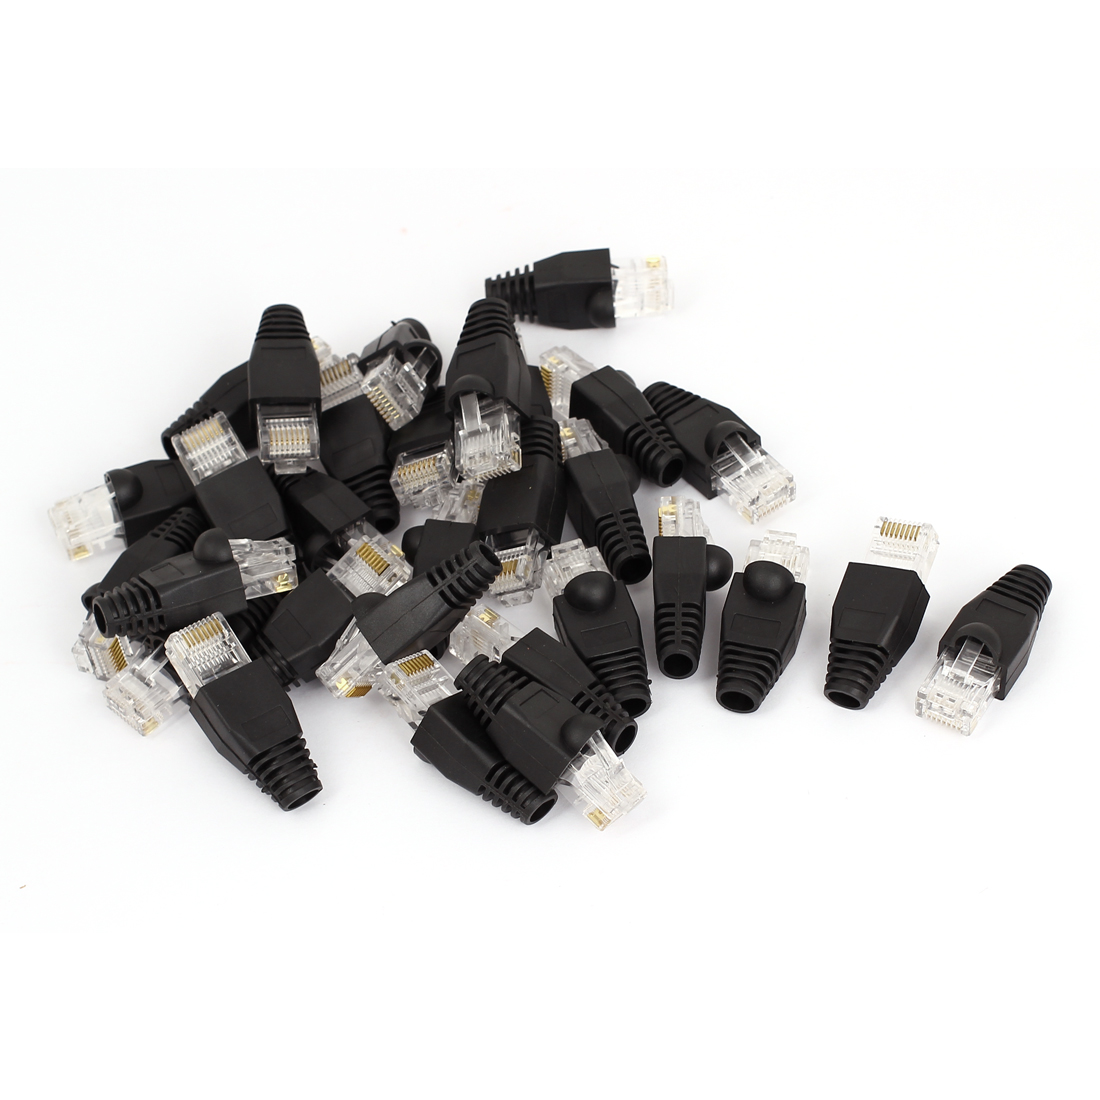 30 Pcs 8P8C RJ45 Head Shielded Modular End Wire Adapter w Boots Cover Black